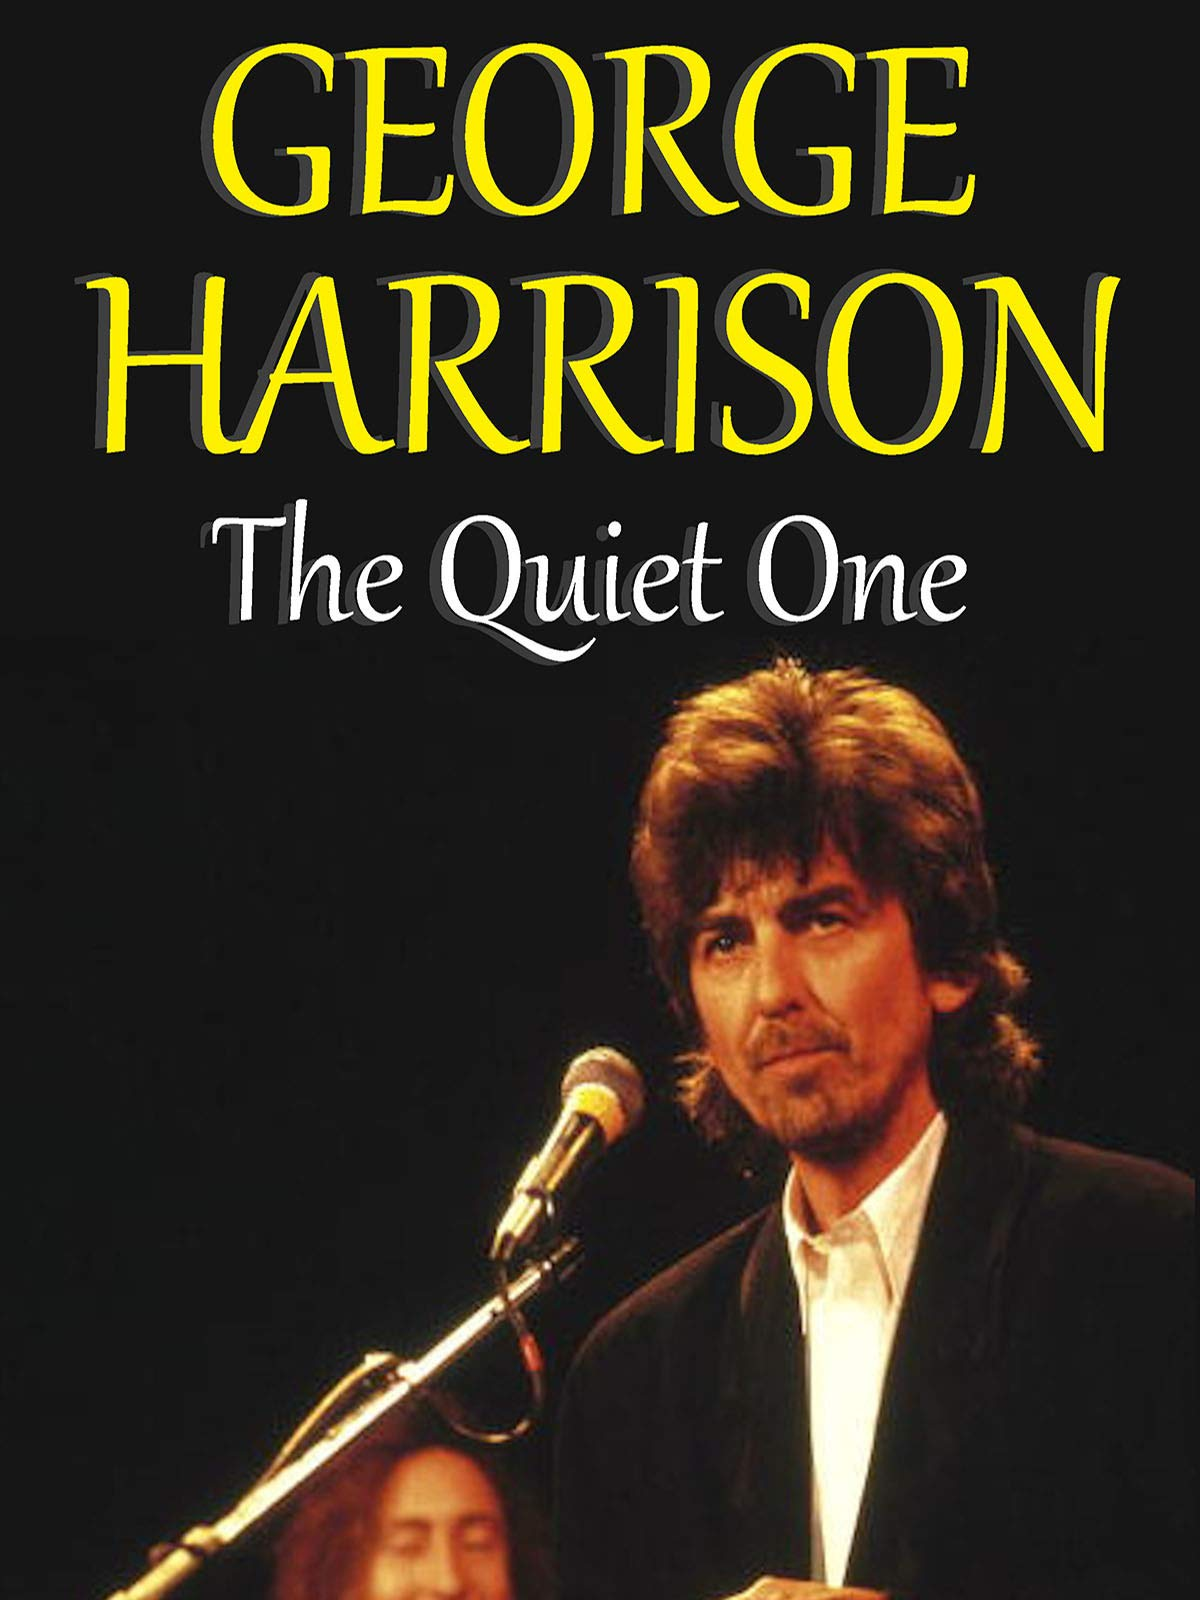 George Harrison The Quite One